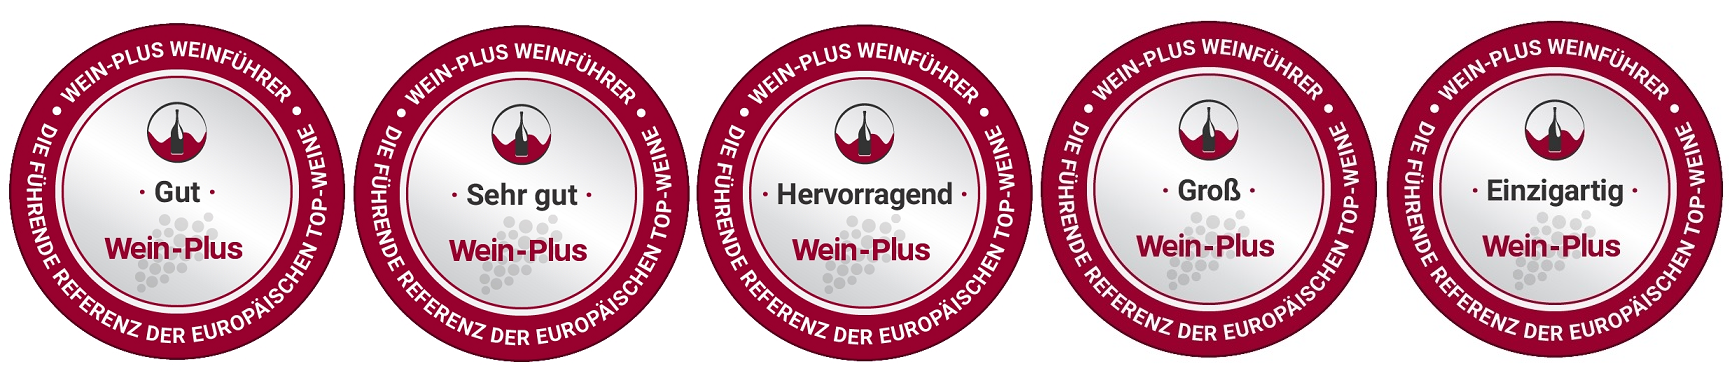 Wine rating - Wein-Plus: good, very good, excellent, large, unique